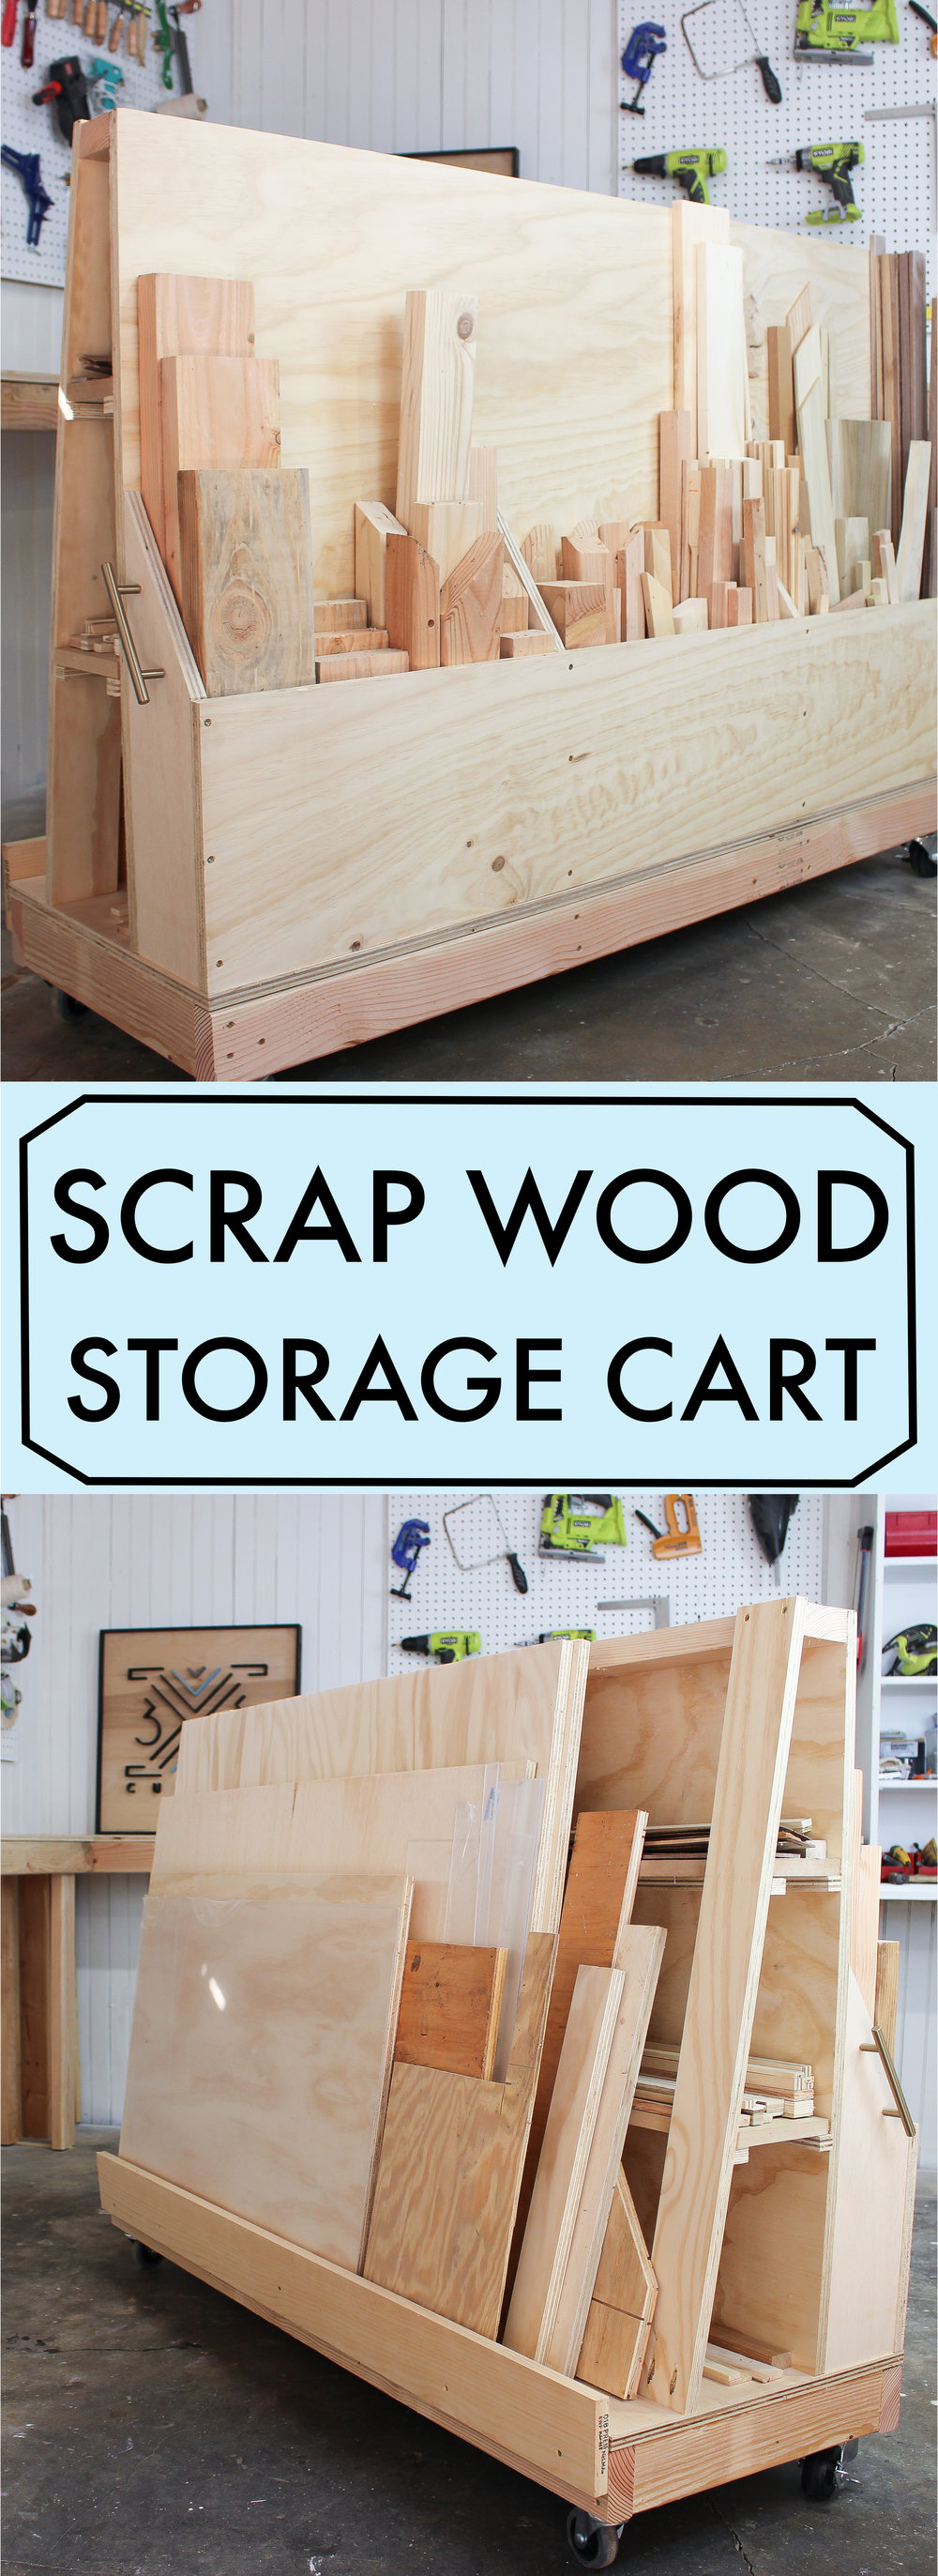 DIY Scrap Wood Storage Cart